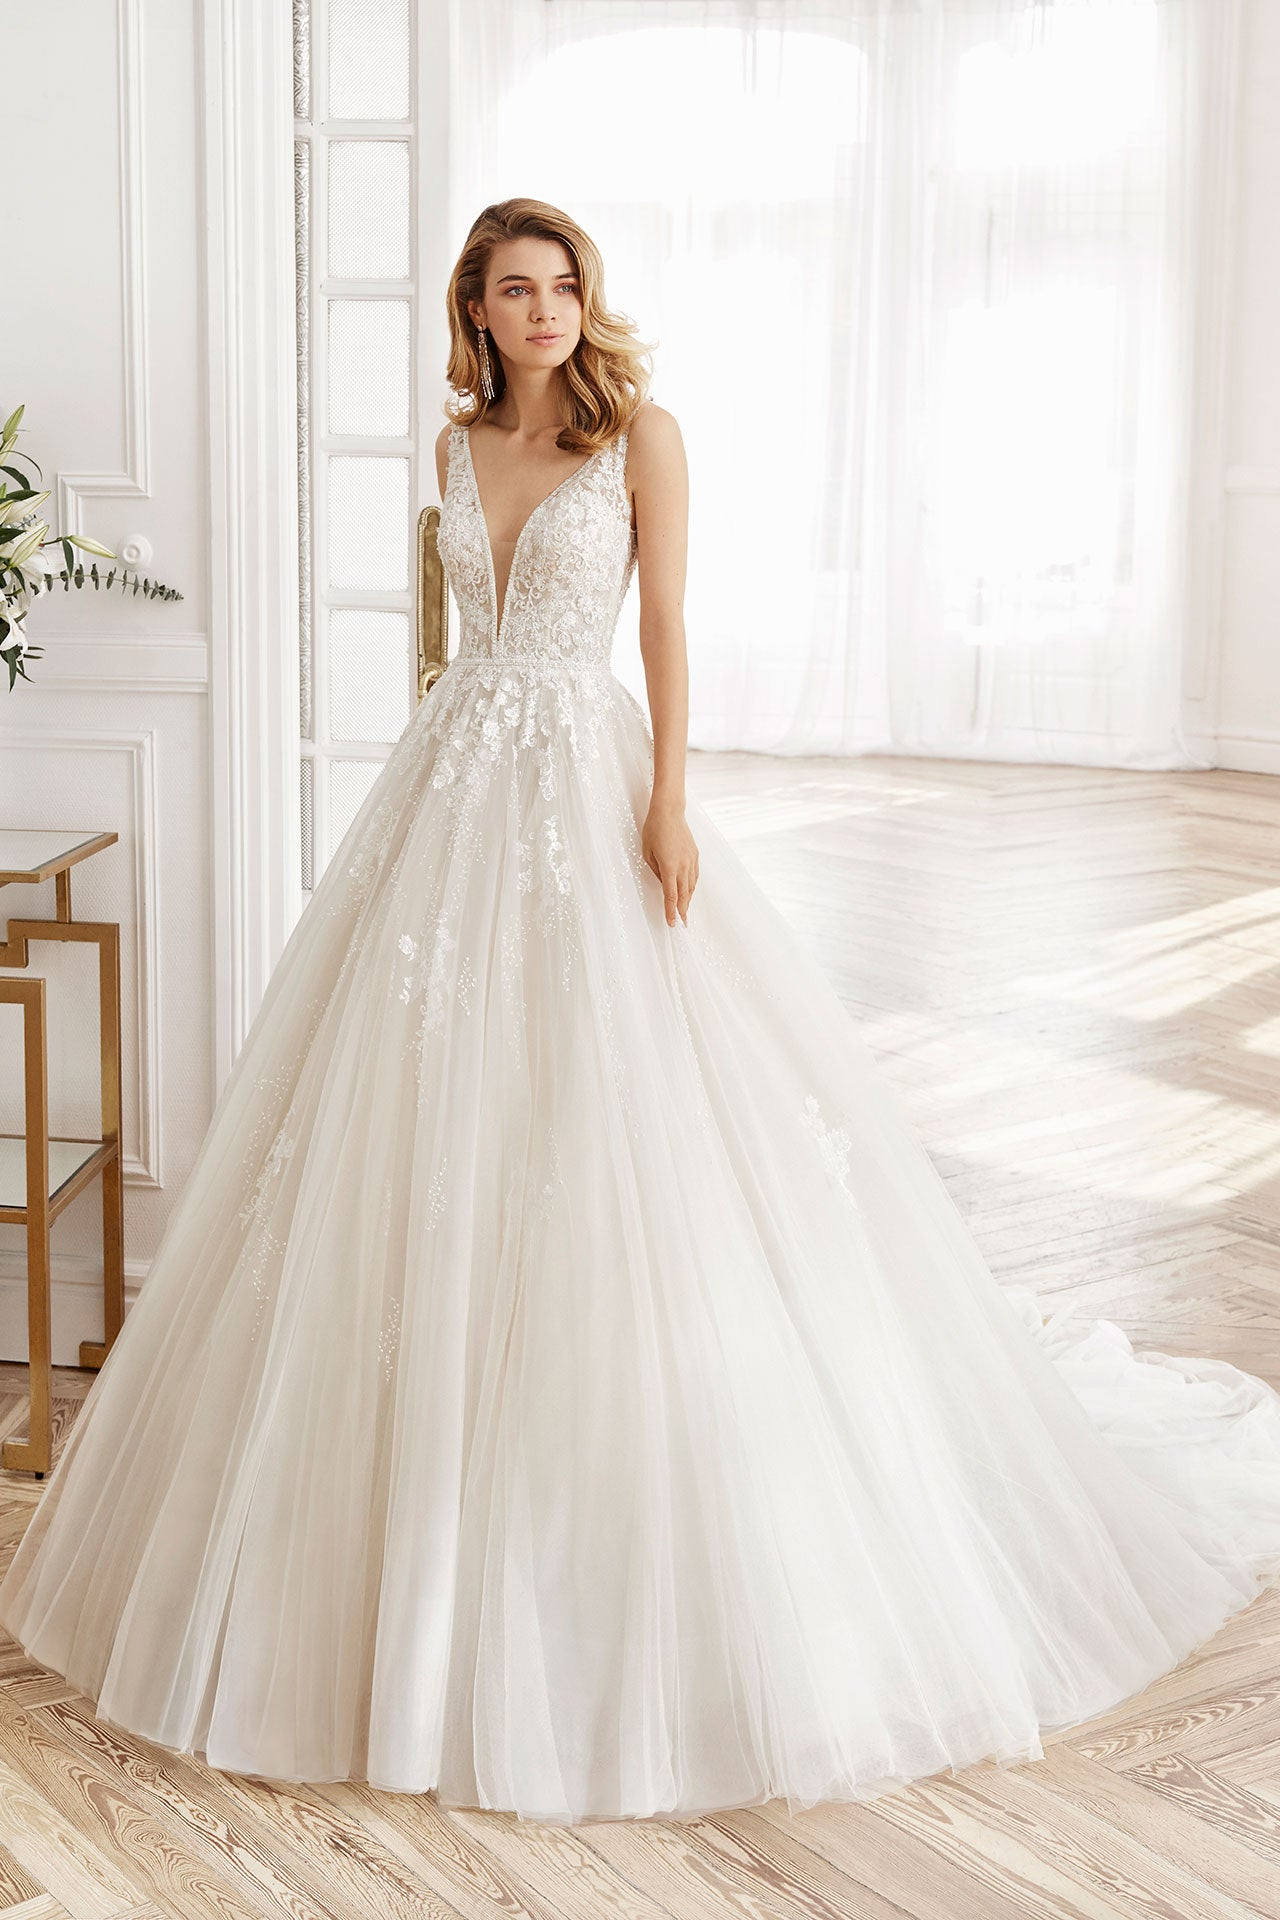 Noba - New, Gown, Aire Barcelona - Eternal Bridal